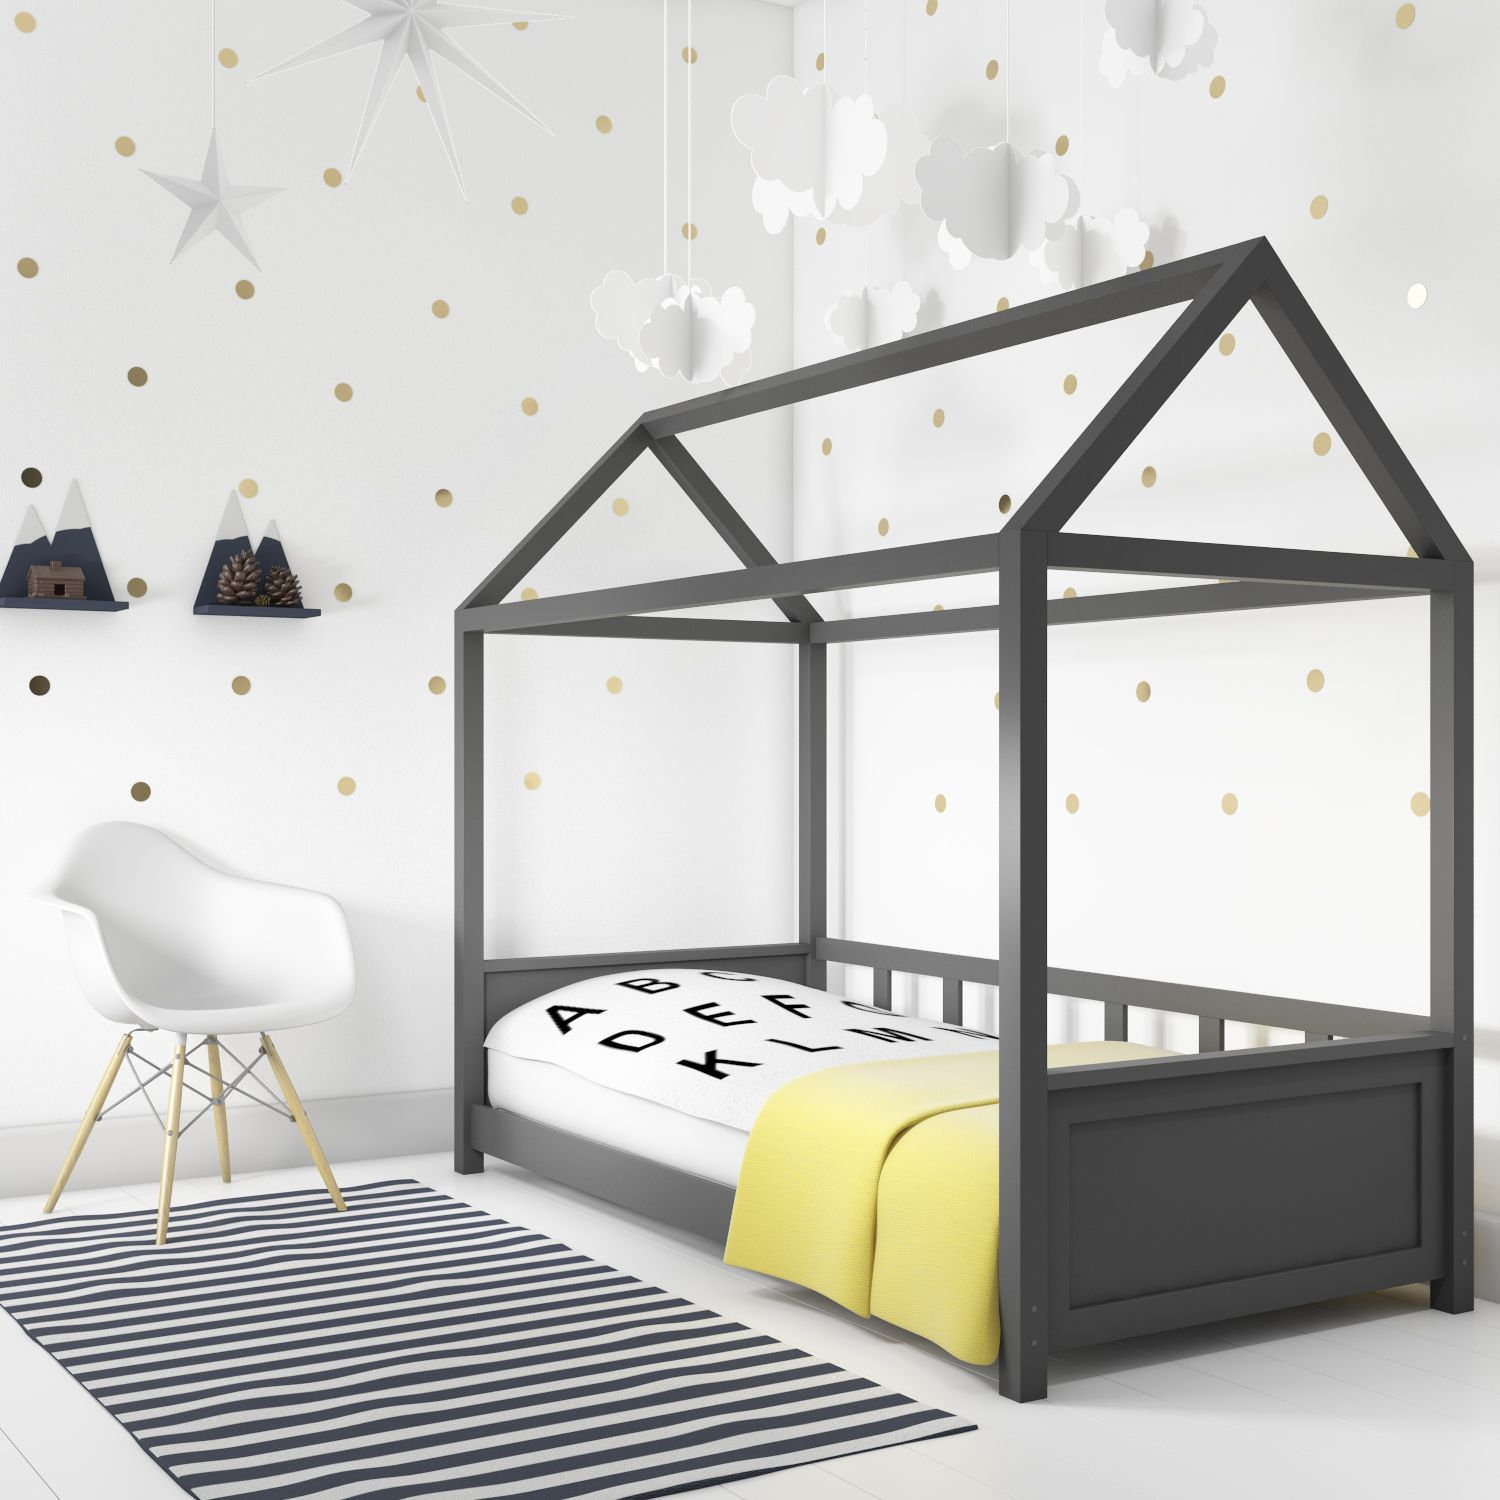 New In Coco Anthracite Dark Grey Kids House Bed Frame Also